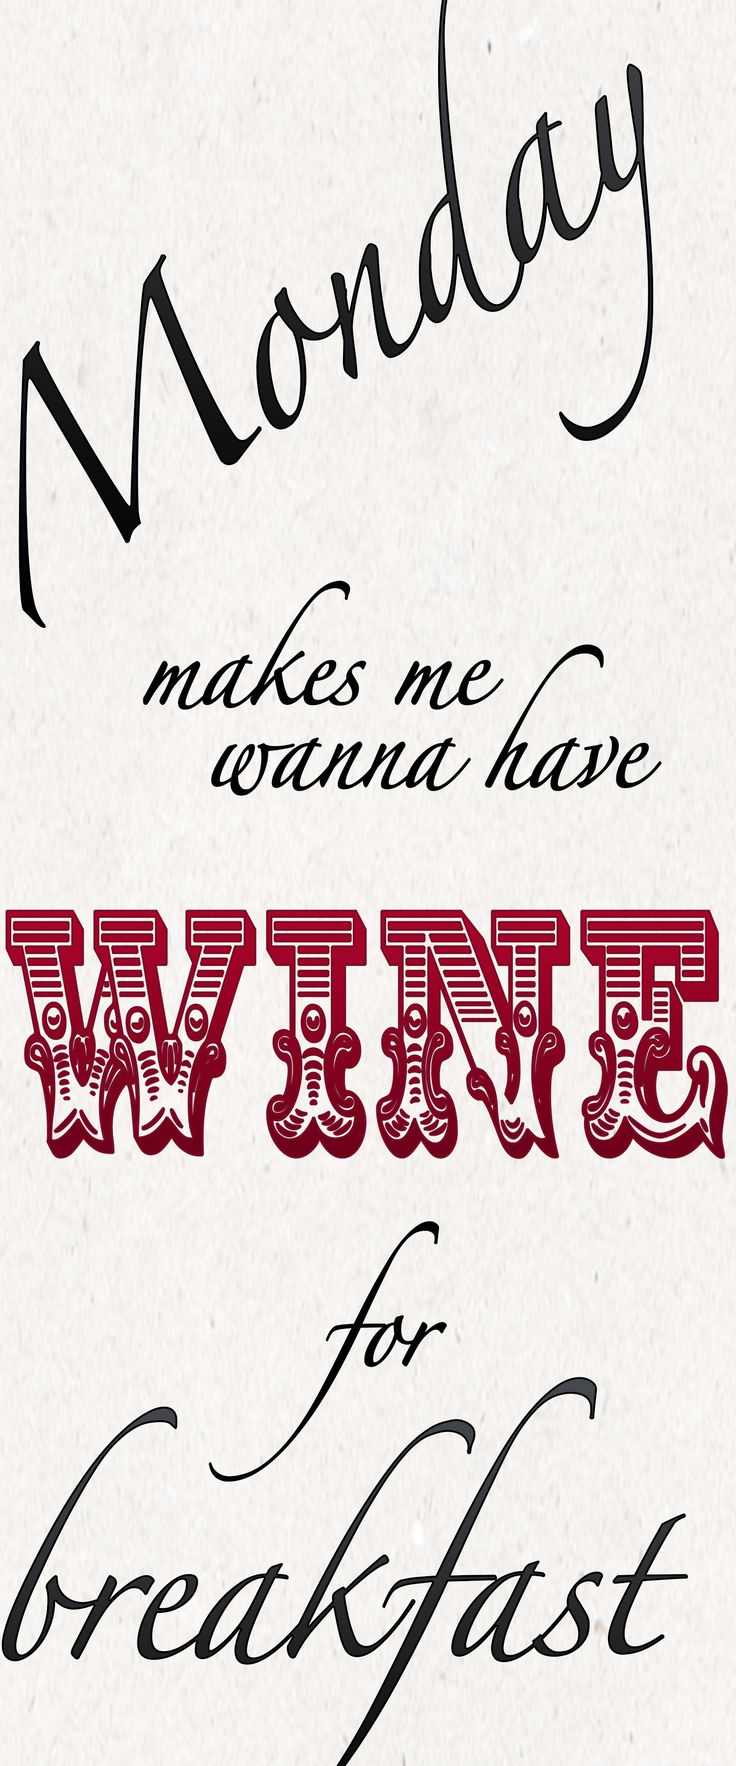 Monday makes me wanna have #wine for breakfast! #StJamesWinery #Wine #Winery #Funny